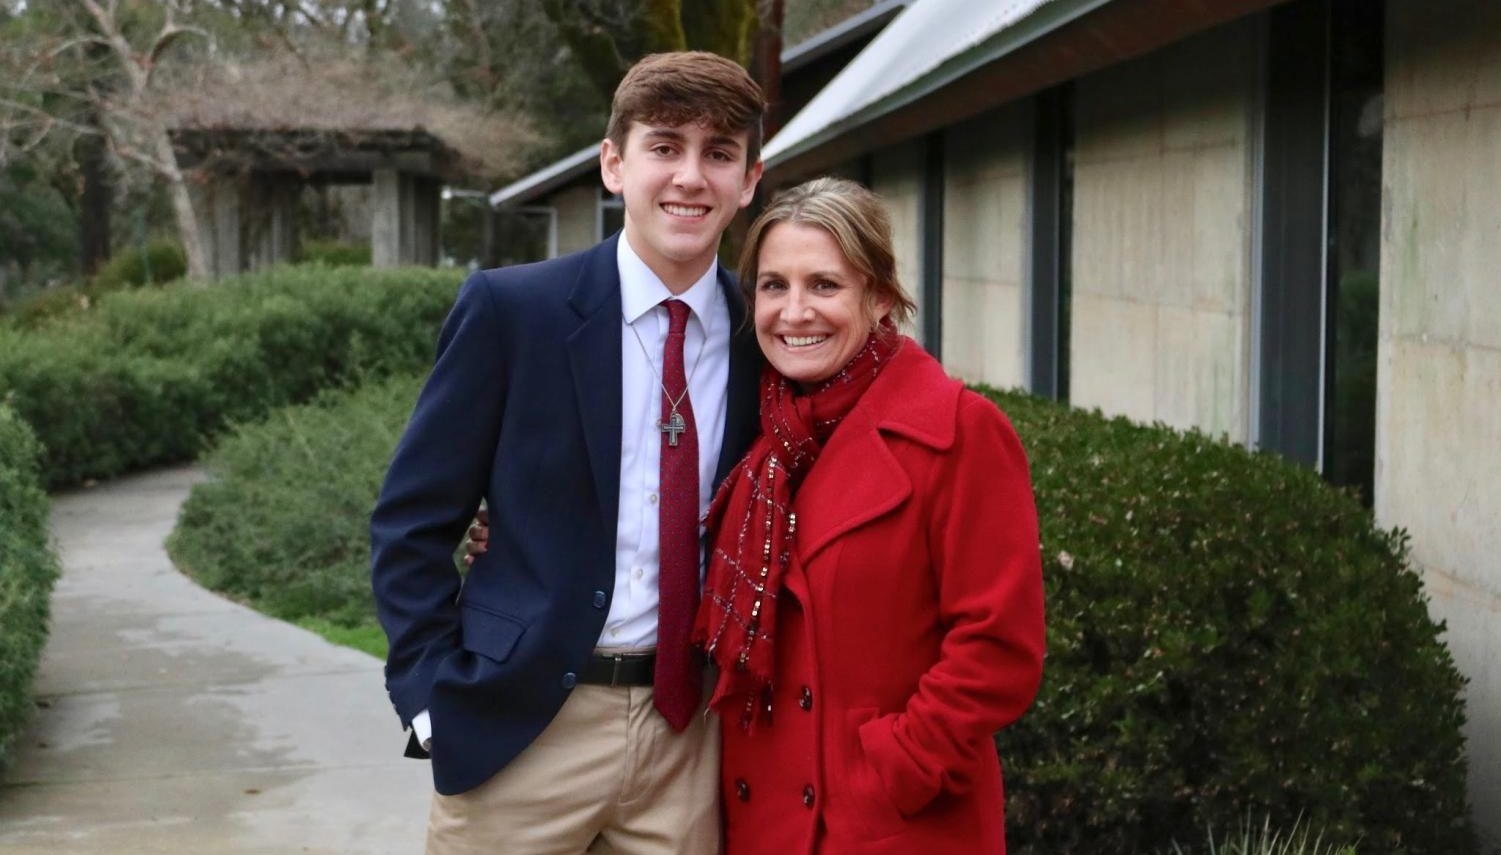 Tyler Smith '18 pictured with Kairos Small Group Leader Ms. Leah Heine. Tyler served a Rector of Kairos 138.